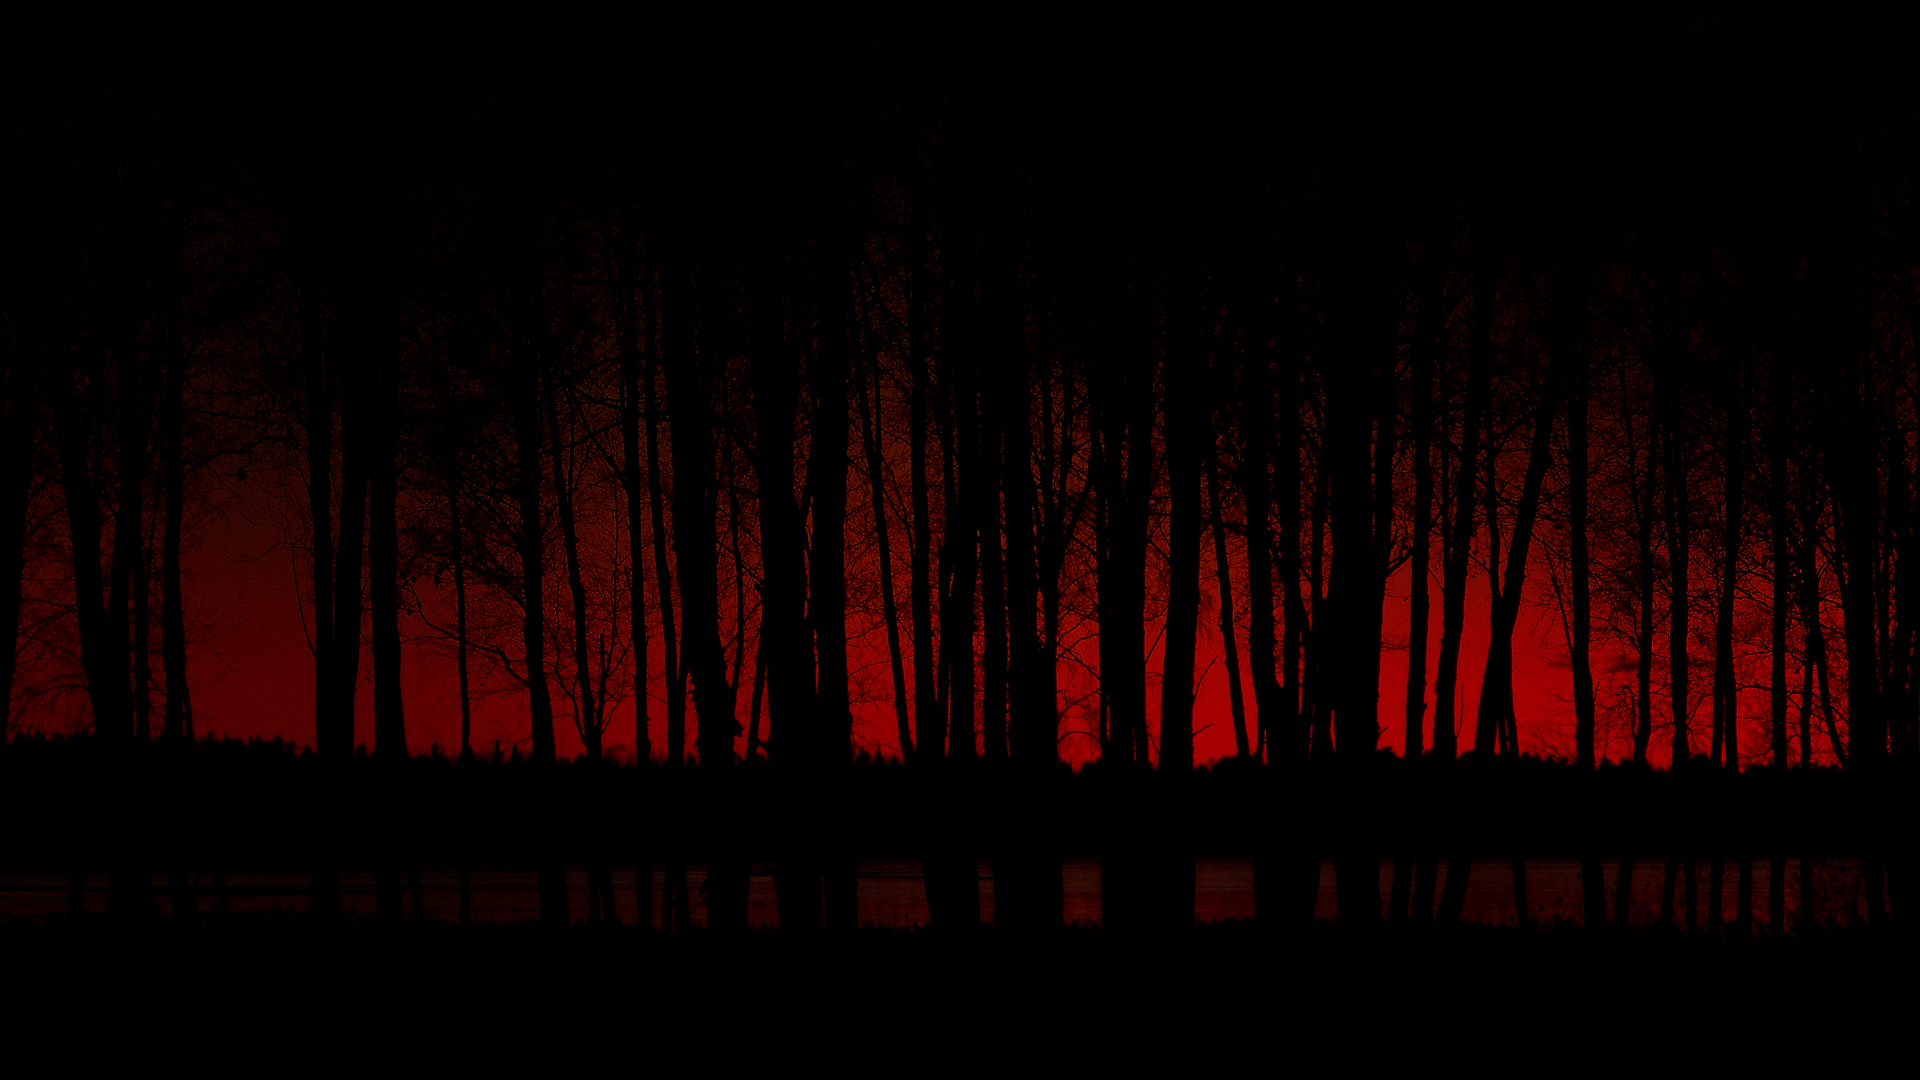 Hd Dark Forest Wallpaper Wallpapersafari